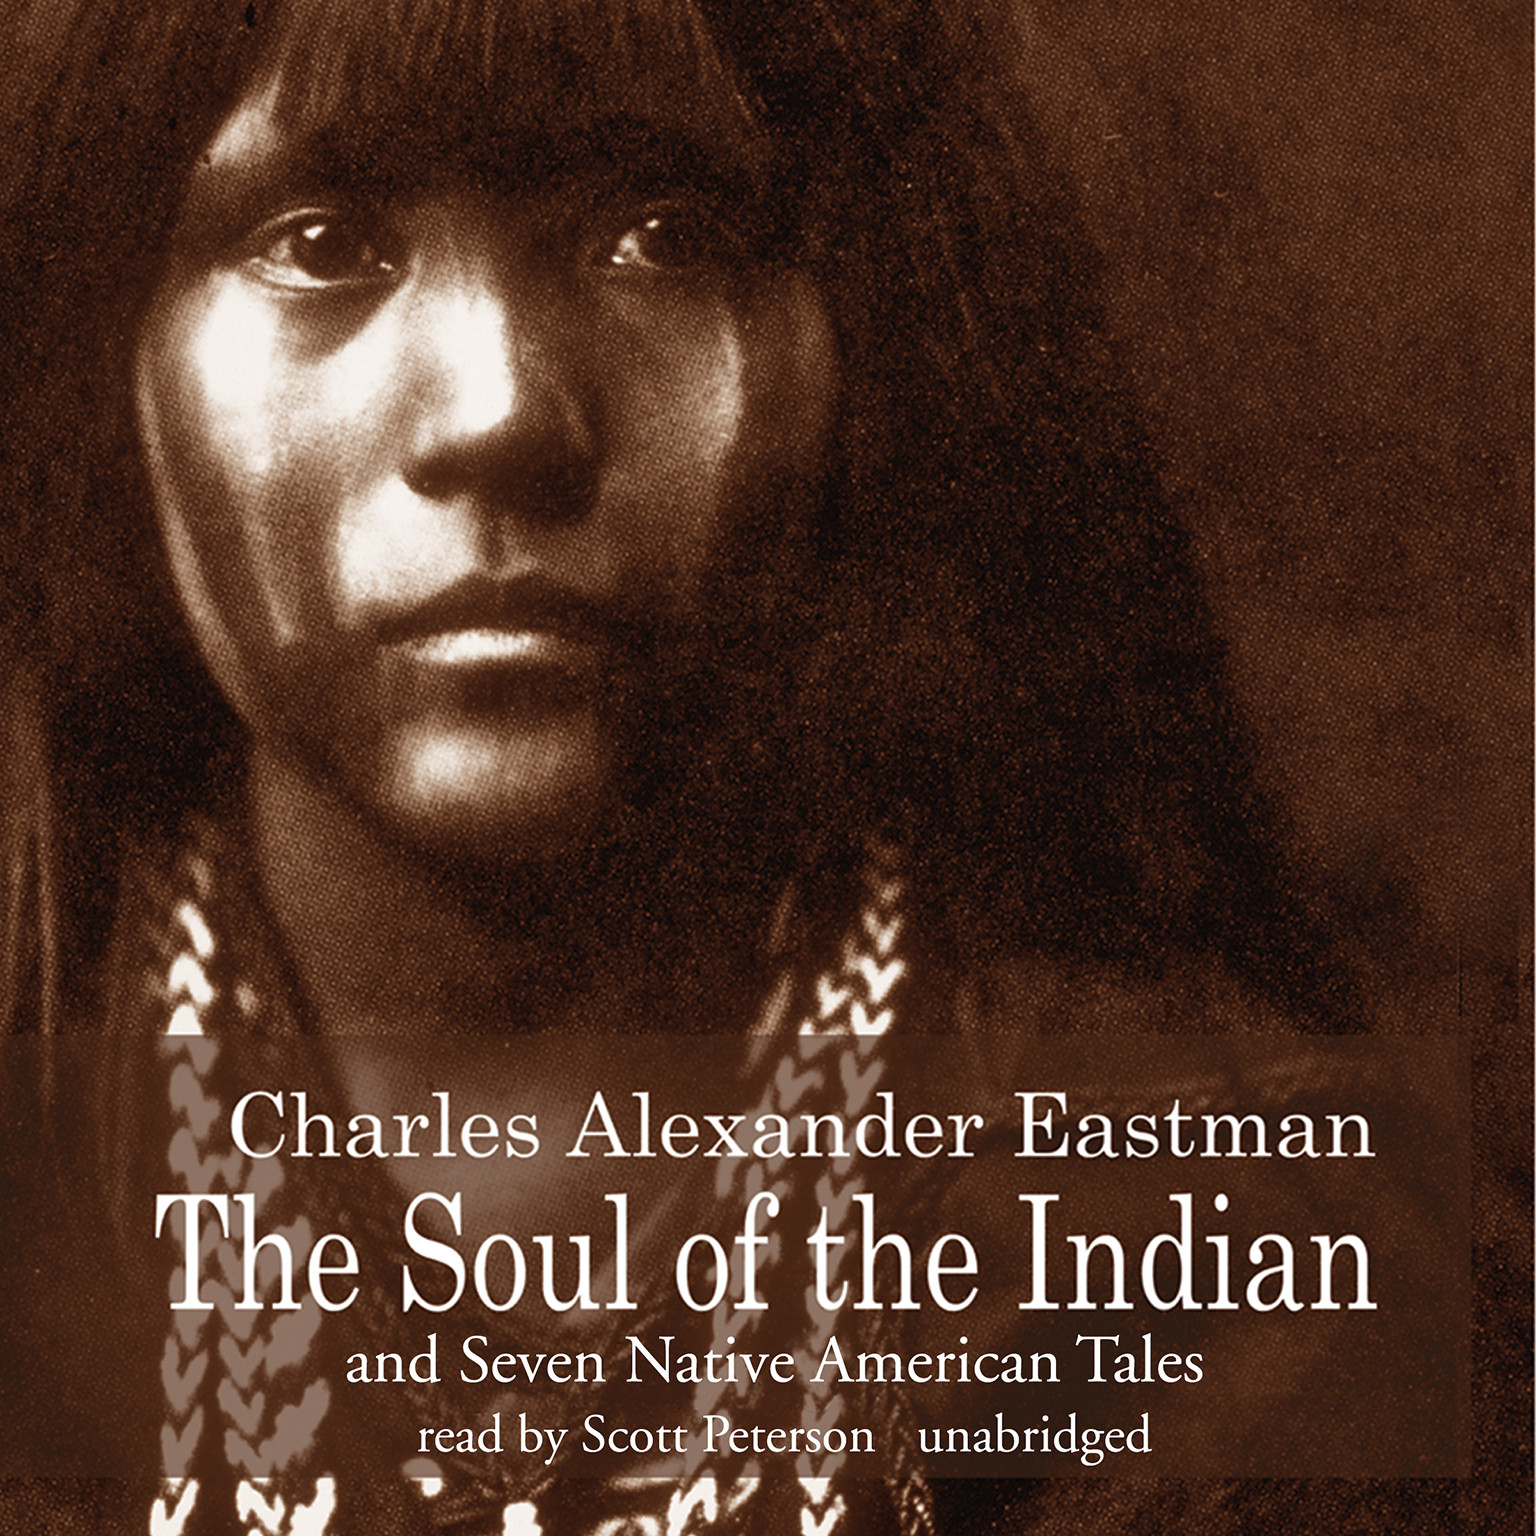 Printable The Soul of the Indian and Seven Native American Tales Audiobook Cover Art